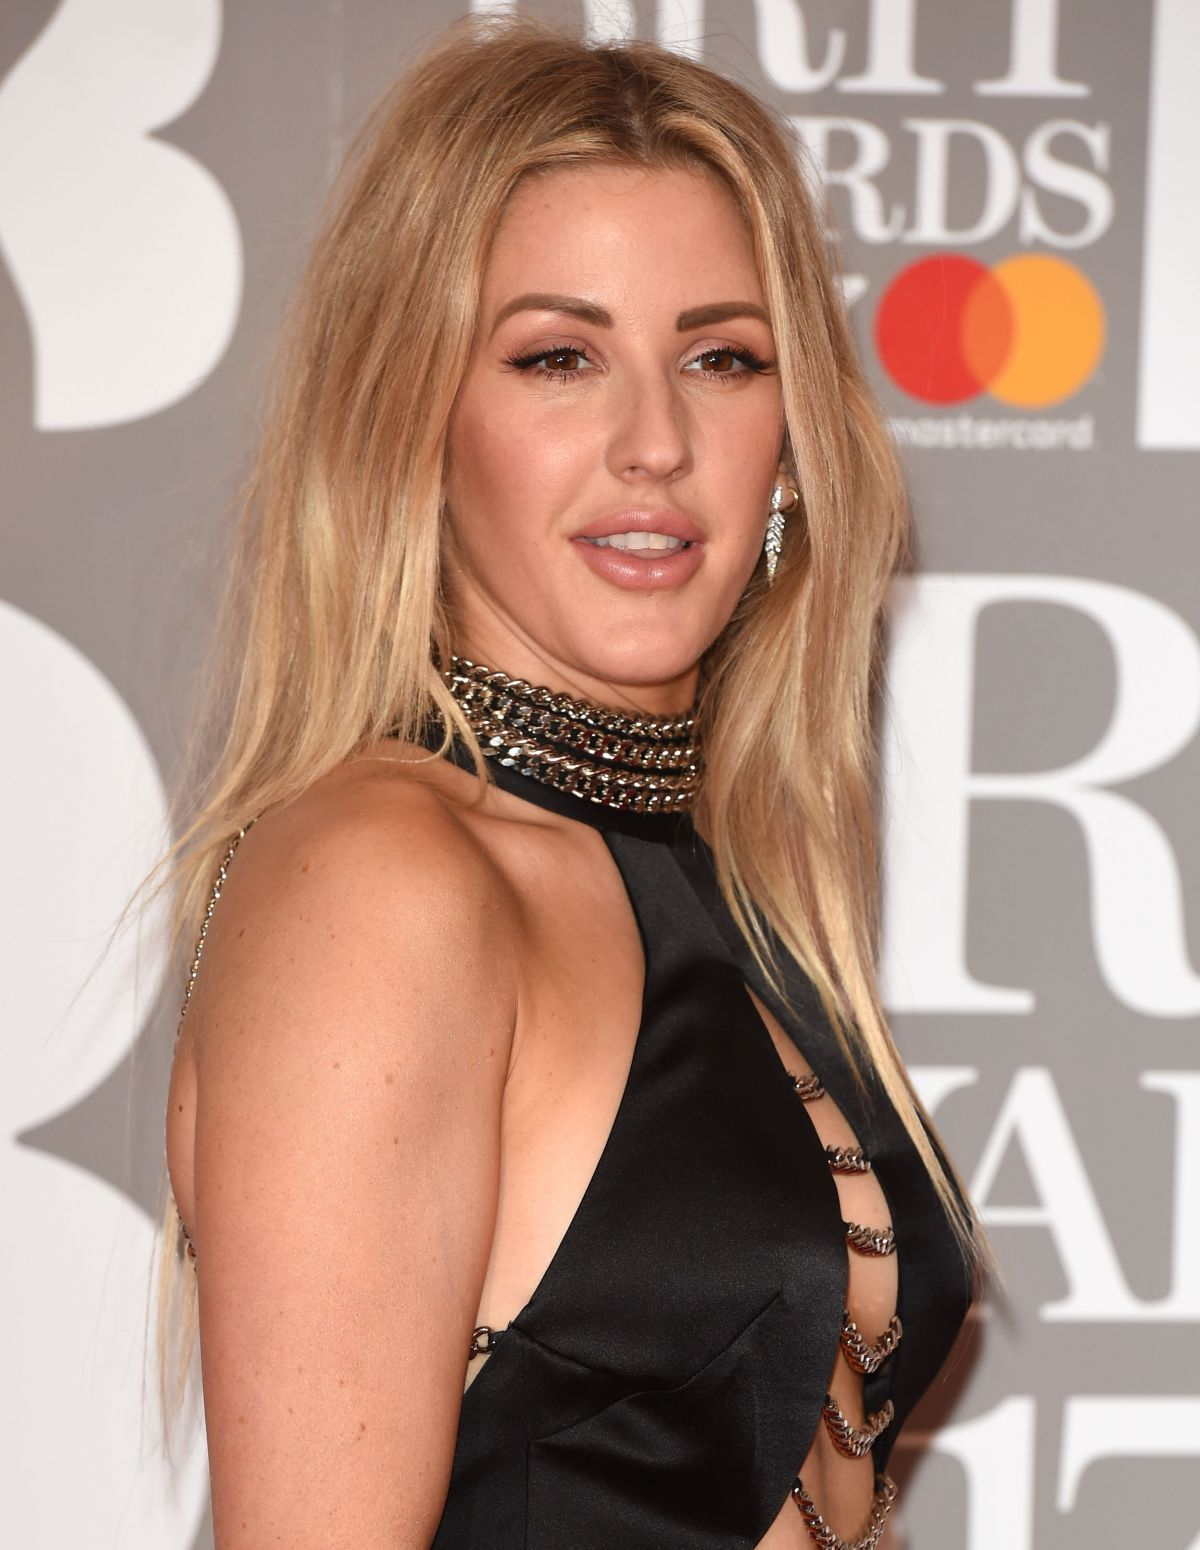 Capricorn beauty Ellie Goulding hair and makeup inspiration